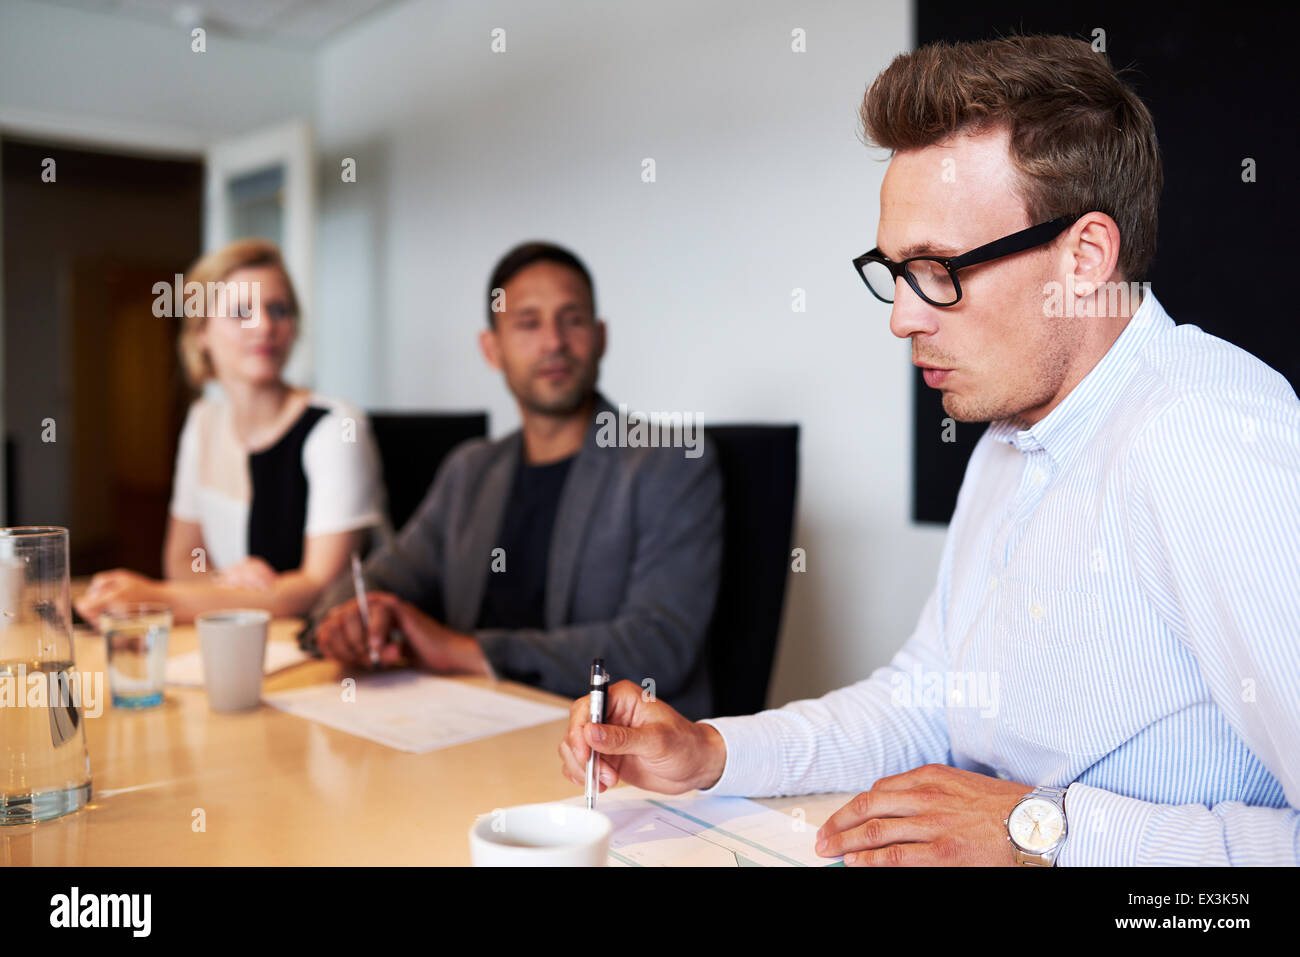 White male executive talking during meeting in conference room - Stock Image